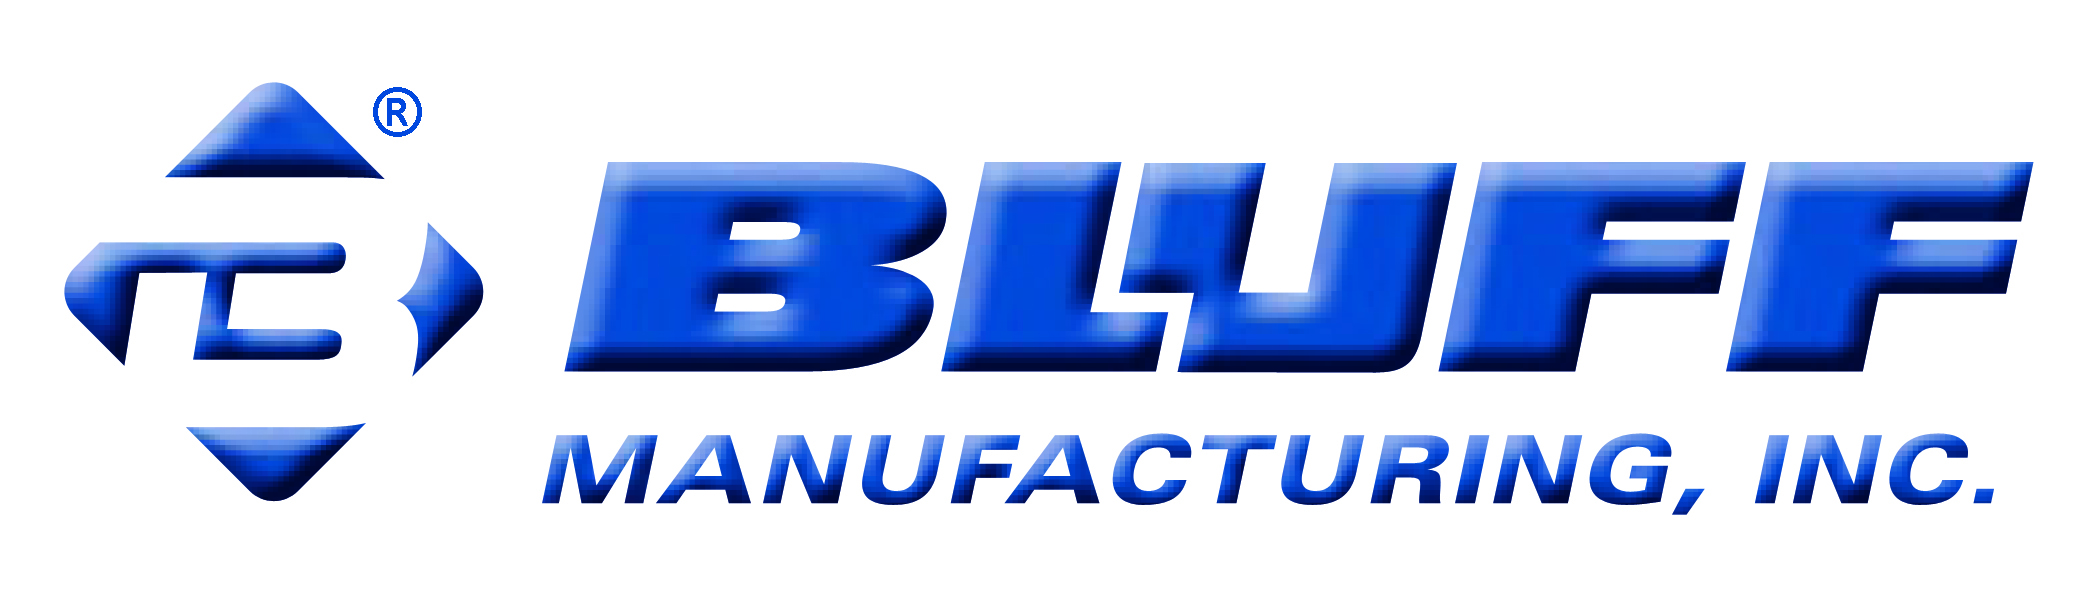 Fantastic Manufacturing Company Logo Gallery - Electrical System ...